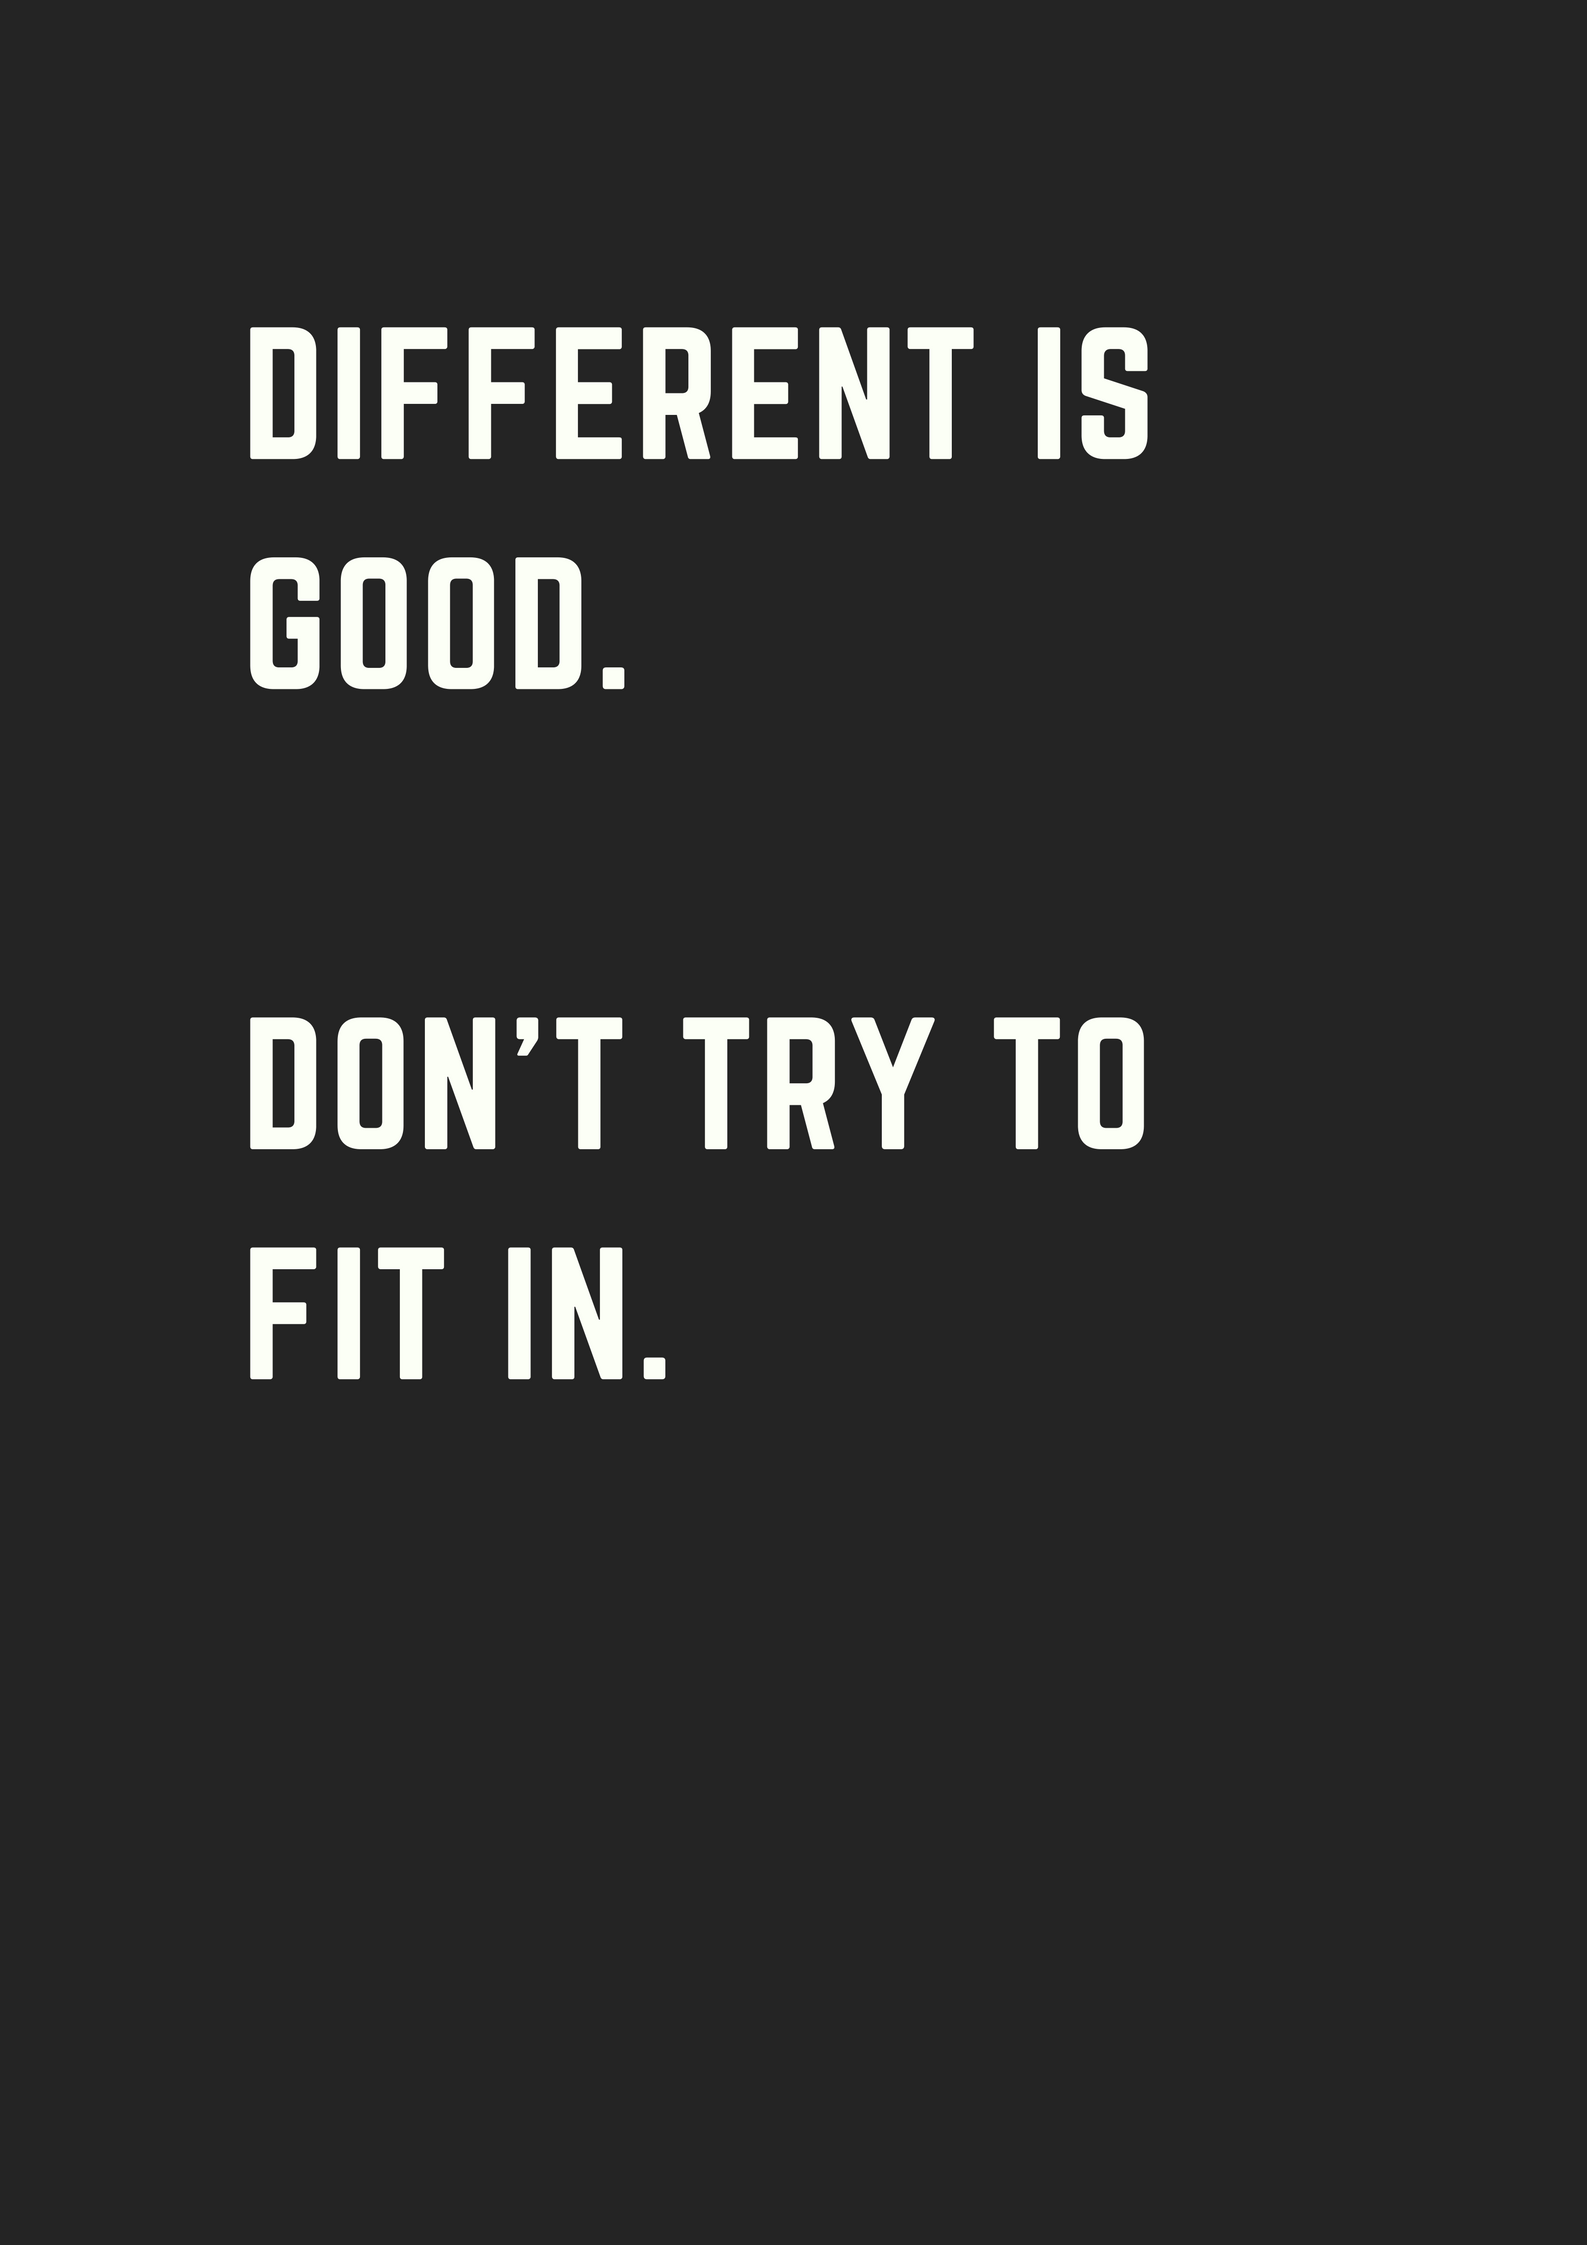 Image of: Images Super Inspirational Bw Quotes Inspirational Quotes For Kids Inspiring Quotes About Life Great Quotes Pinterest Top 10 Black And White Inspirational Quotes Travel Quotes Quotes